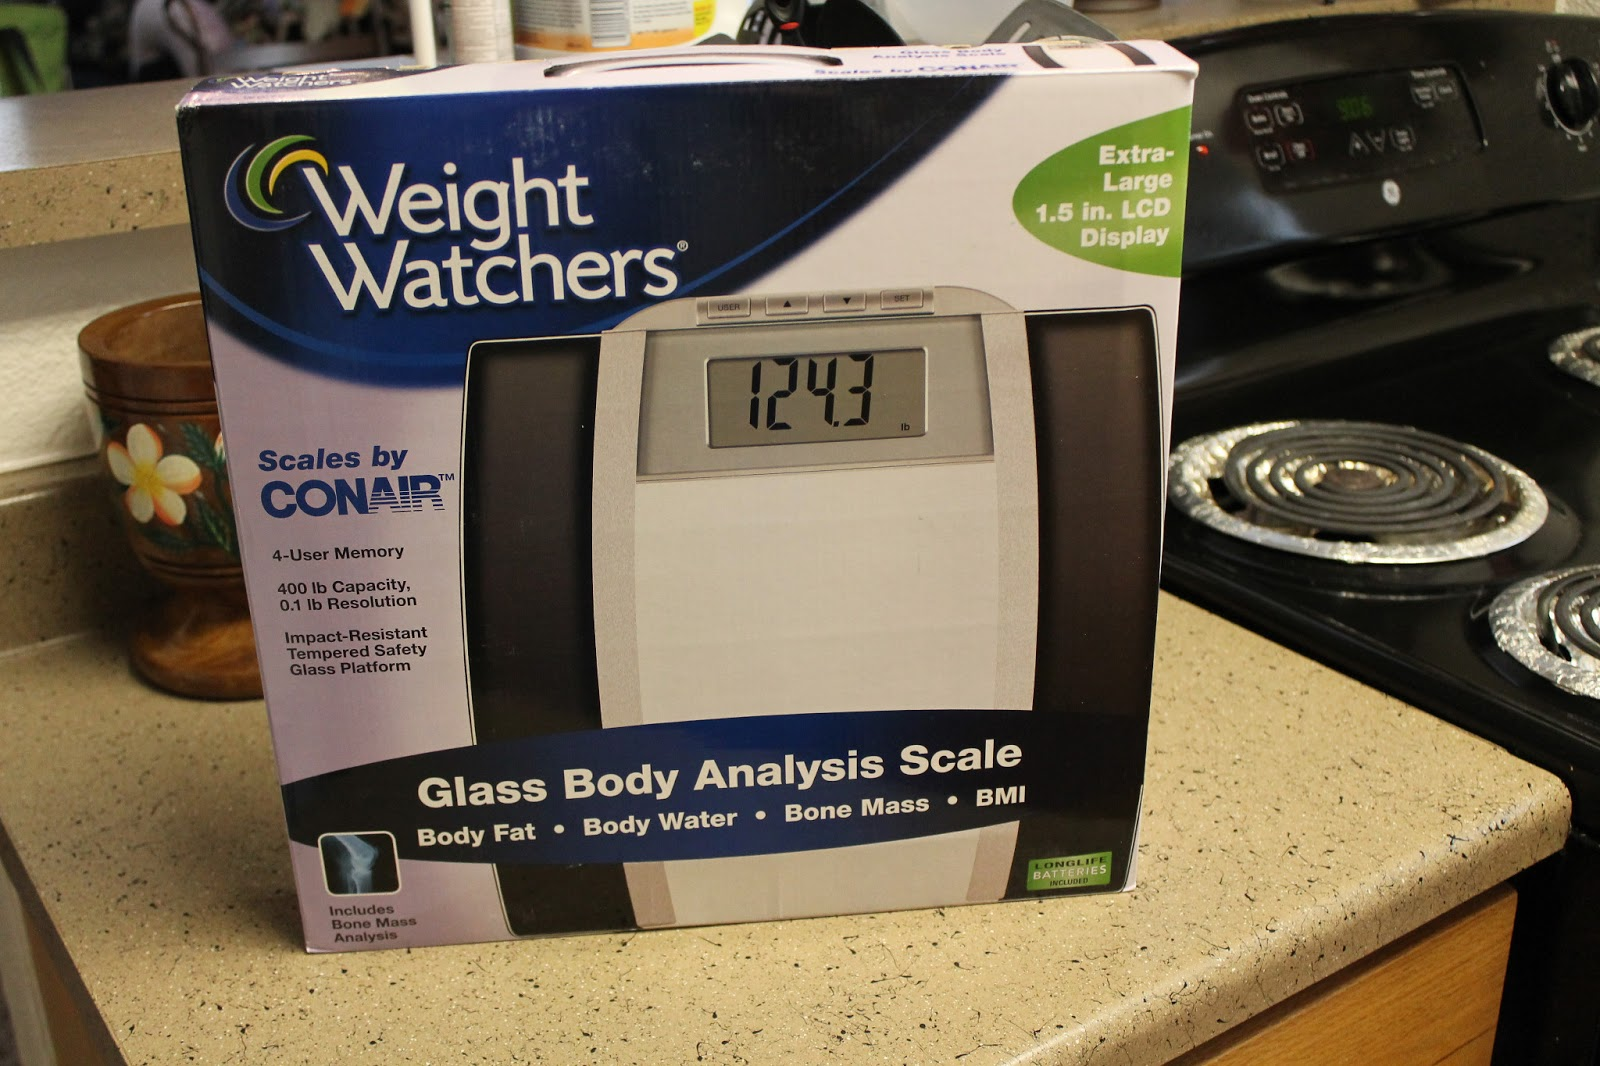 Weight Watchers By Conair Gl Body Ysis Scale Model Ww78